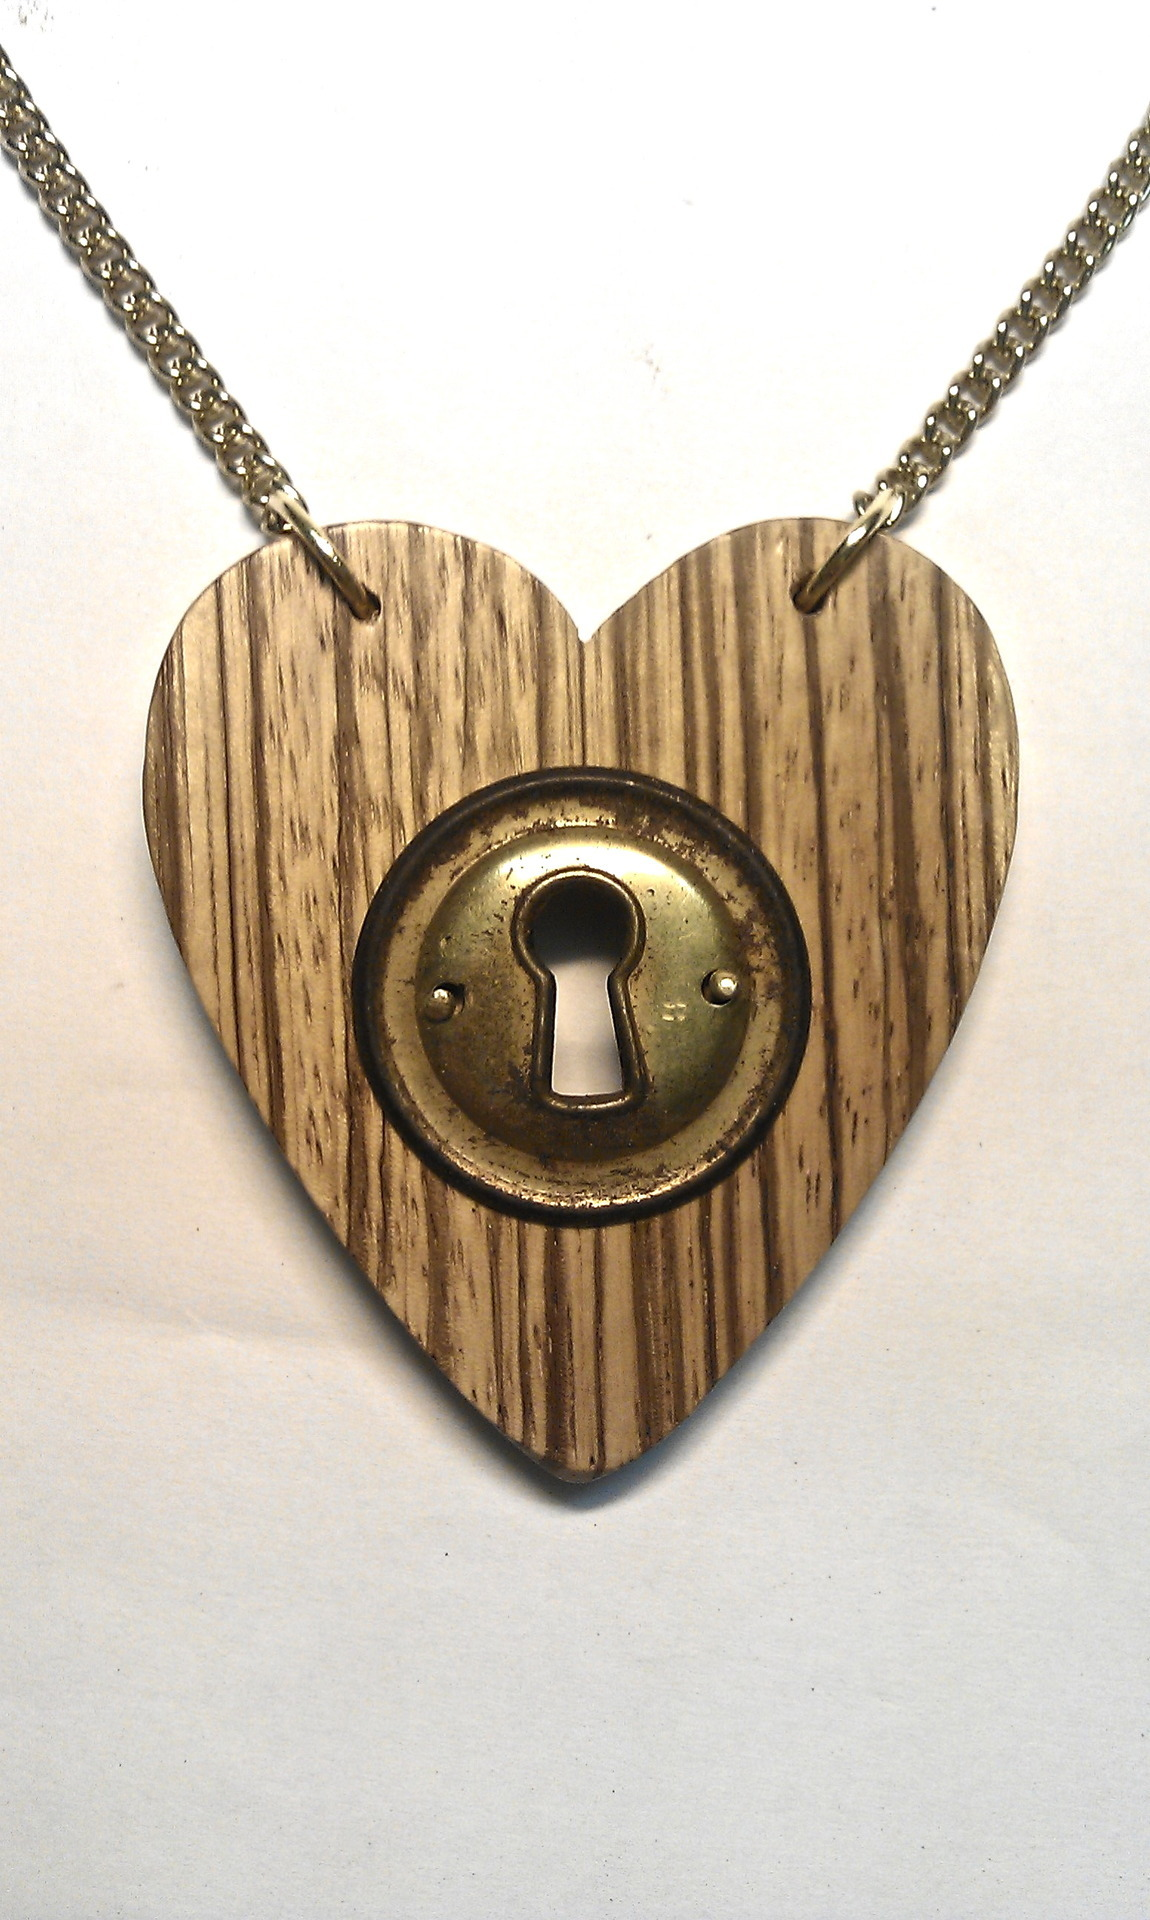 zebrawood heart necklace with a damn old rusty metal fitting 7,5cm x 6,5cm This is the only piece available! FOR SALEorder-> www.facebook.com/pavianplugsorganicspavianplugs@gmx.at